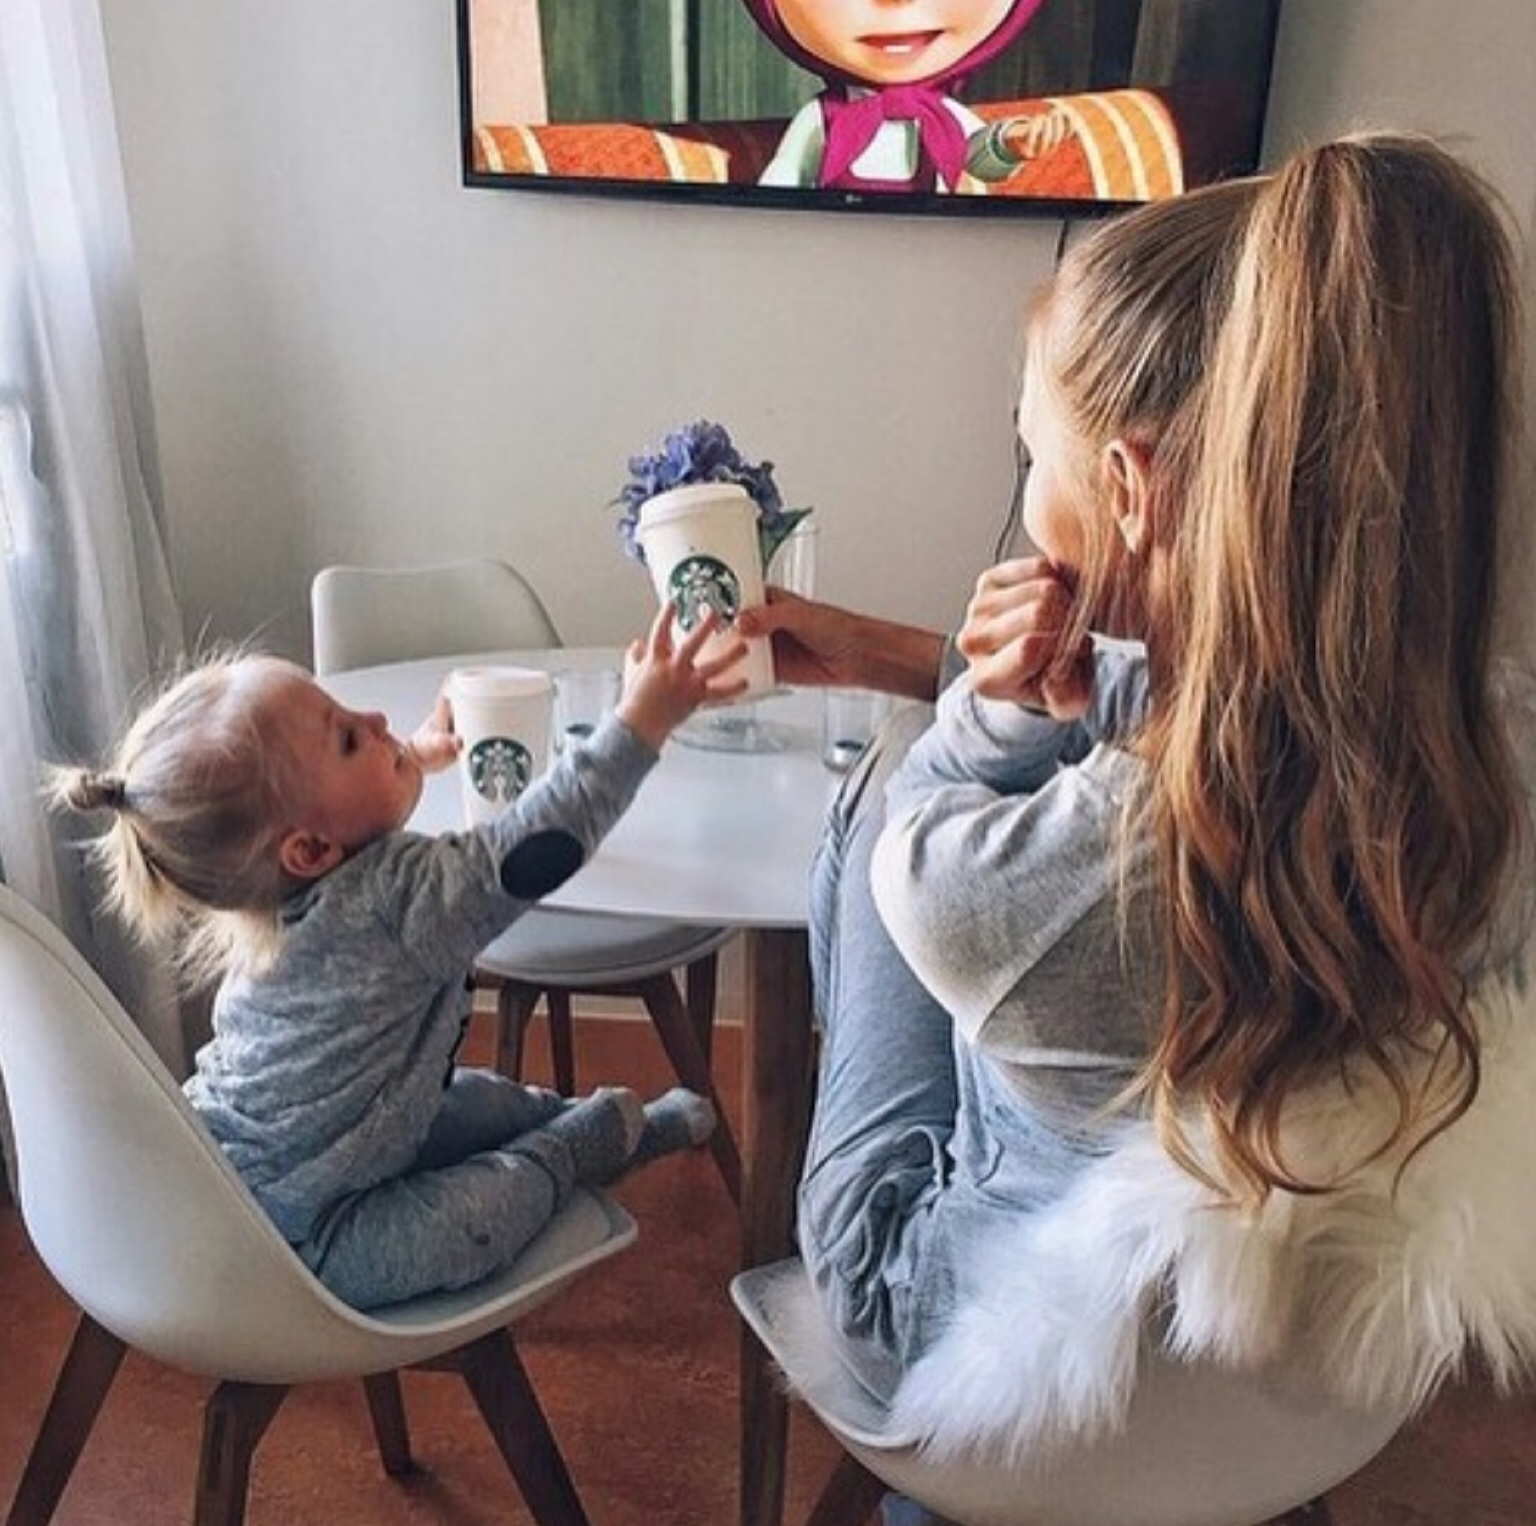 baby, coffee, cutie, dormi, family